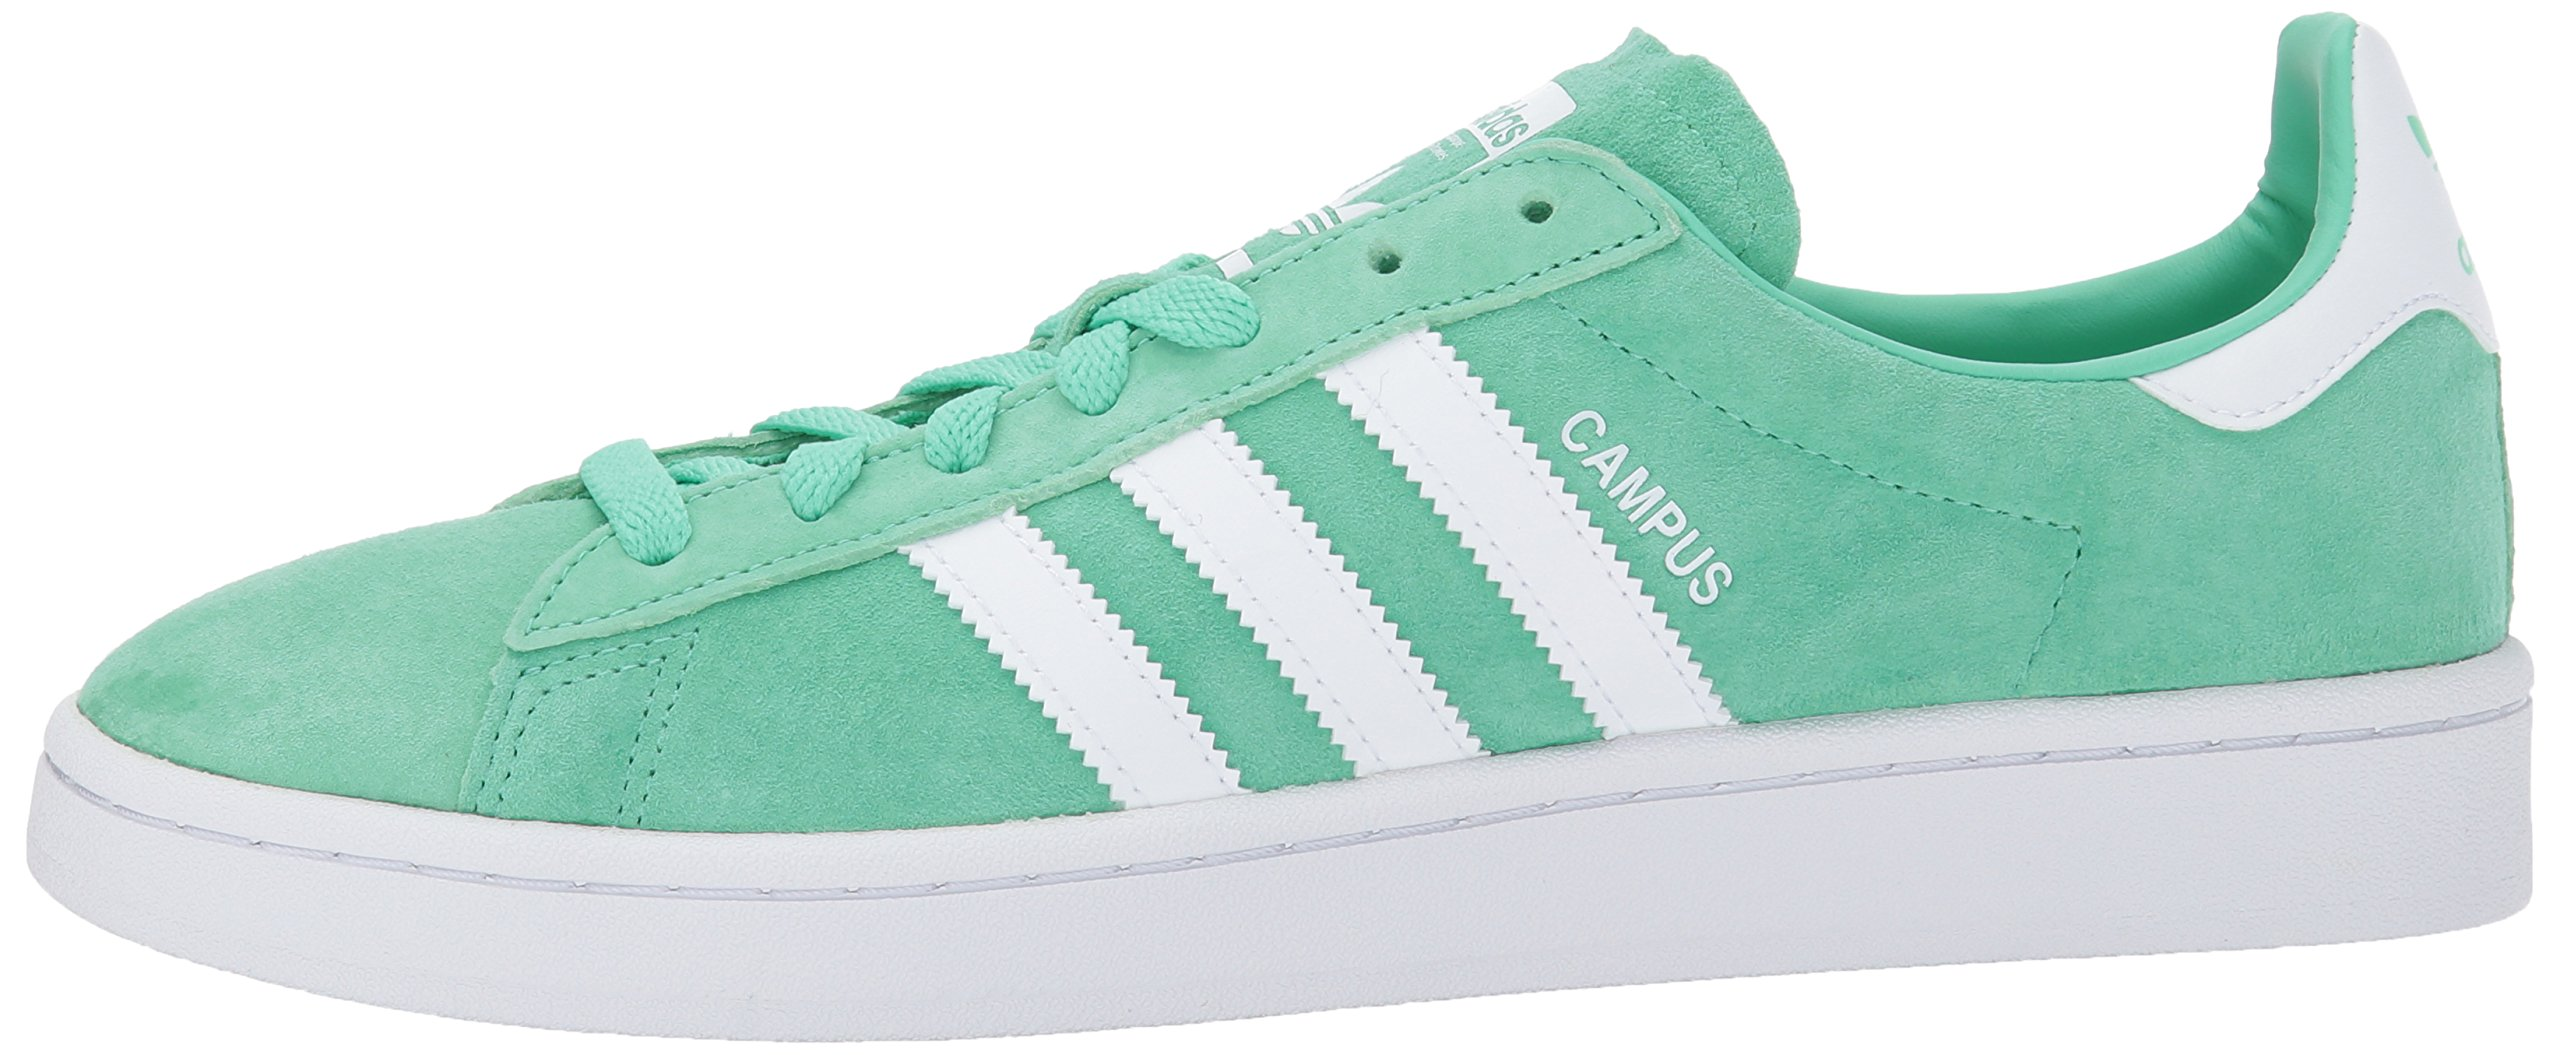 adidas Originals Men's Campus Sneakers -, Green Glow Crystal White, (11 M US) by adidas Originals (Image #5)